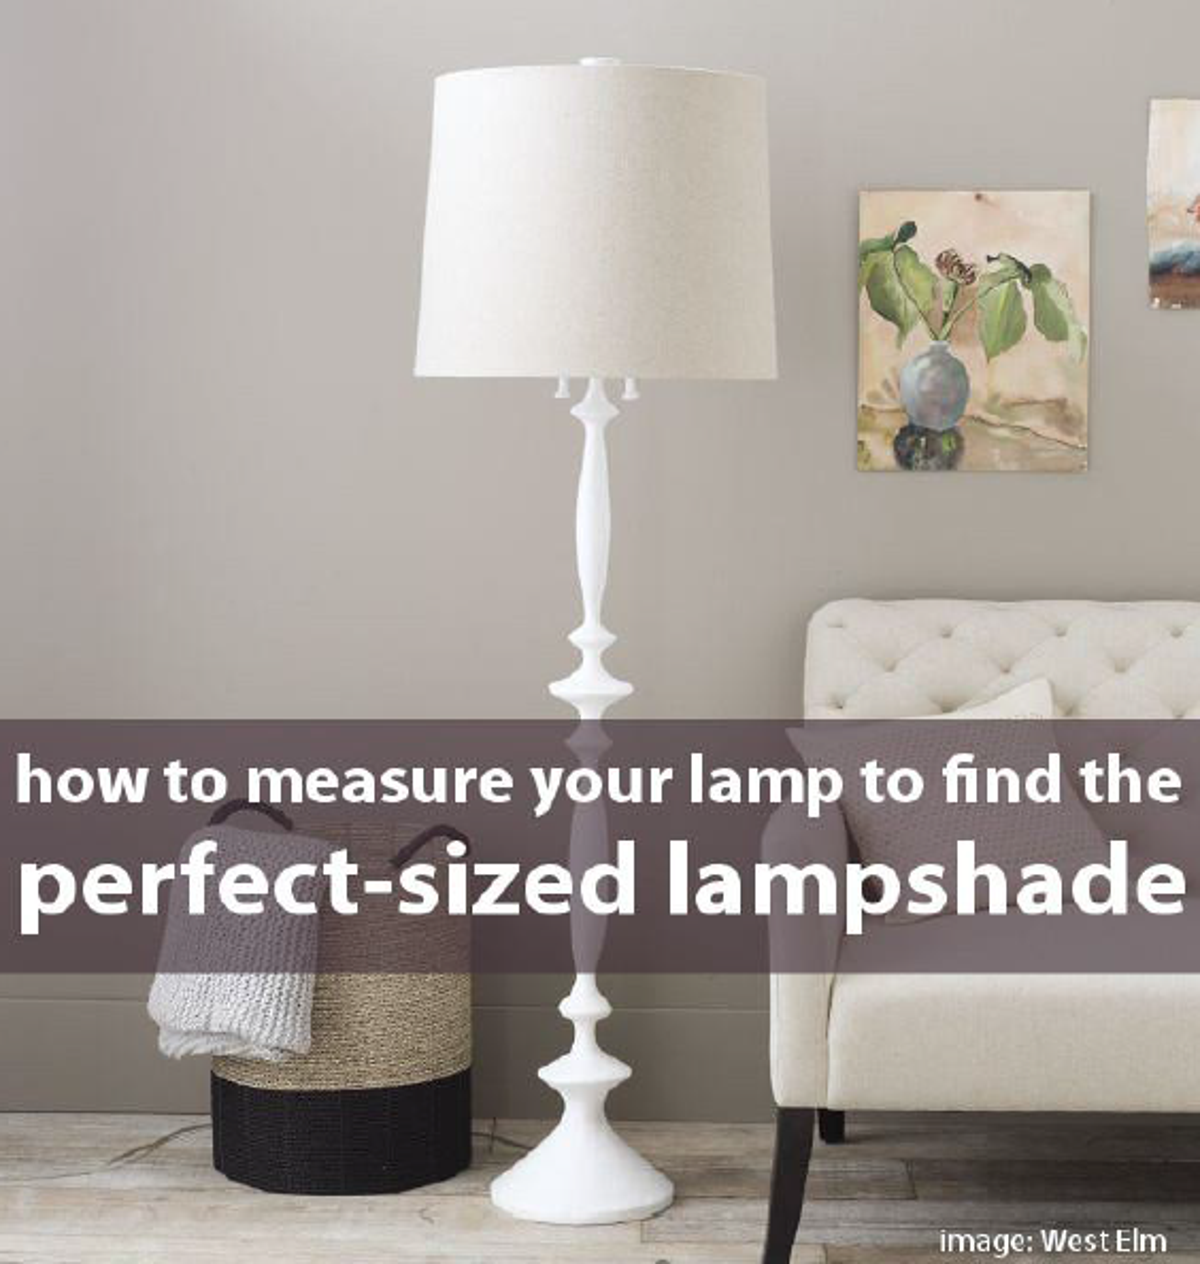 d57dba69638e What Size Lampshade You Need for Your DIY Lighting Project - I Like ...